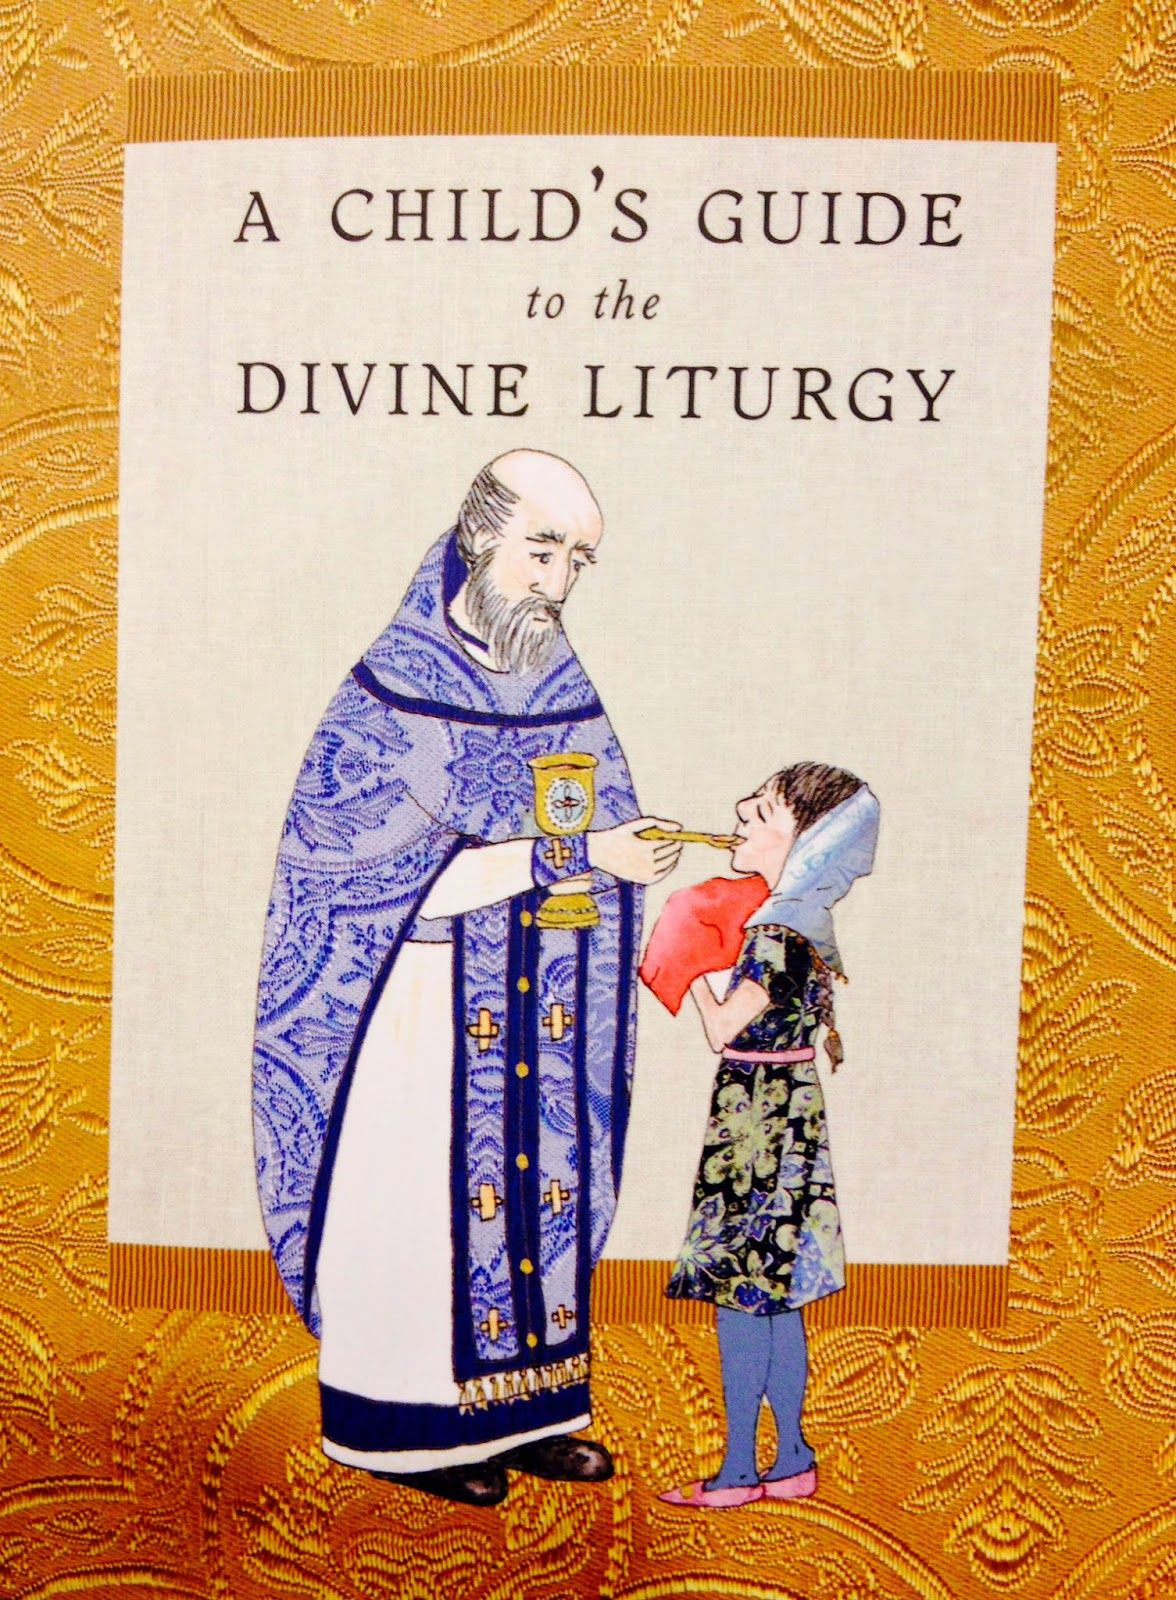 In the True Spirit of Christmas, Some Spiritual Book Recommendations For Last-Minute Shopping ...